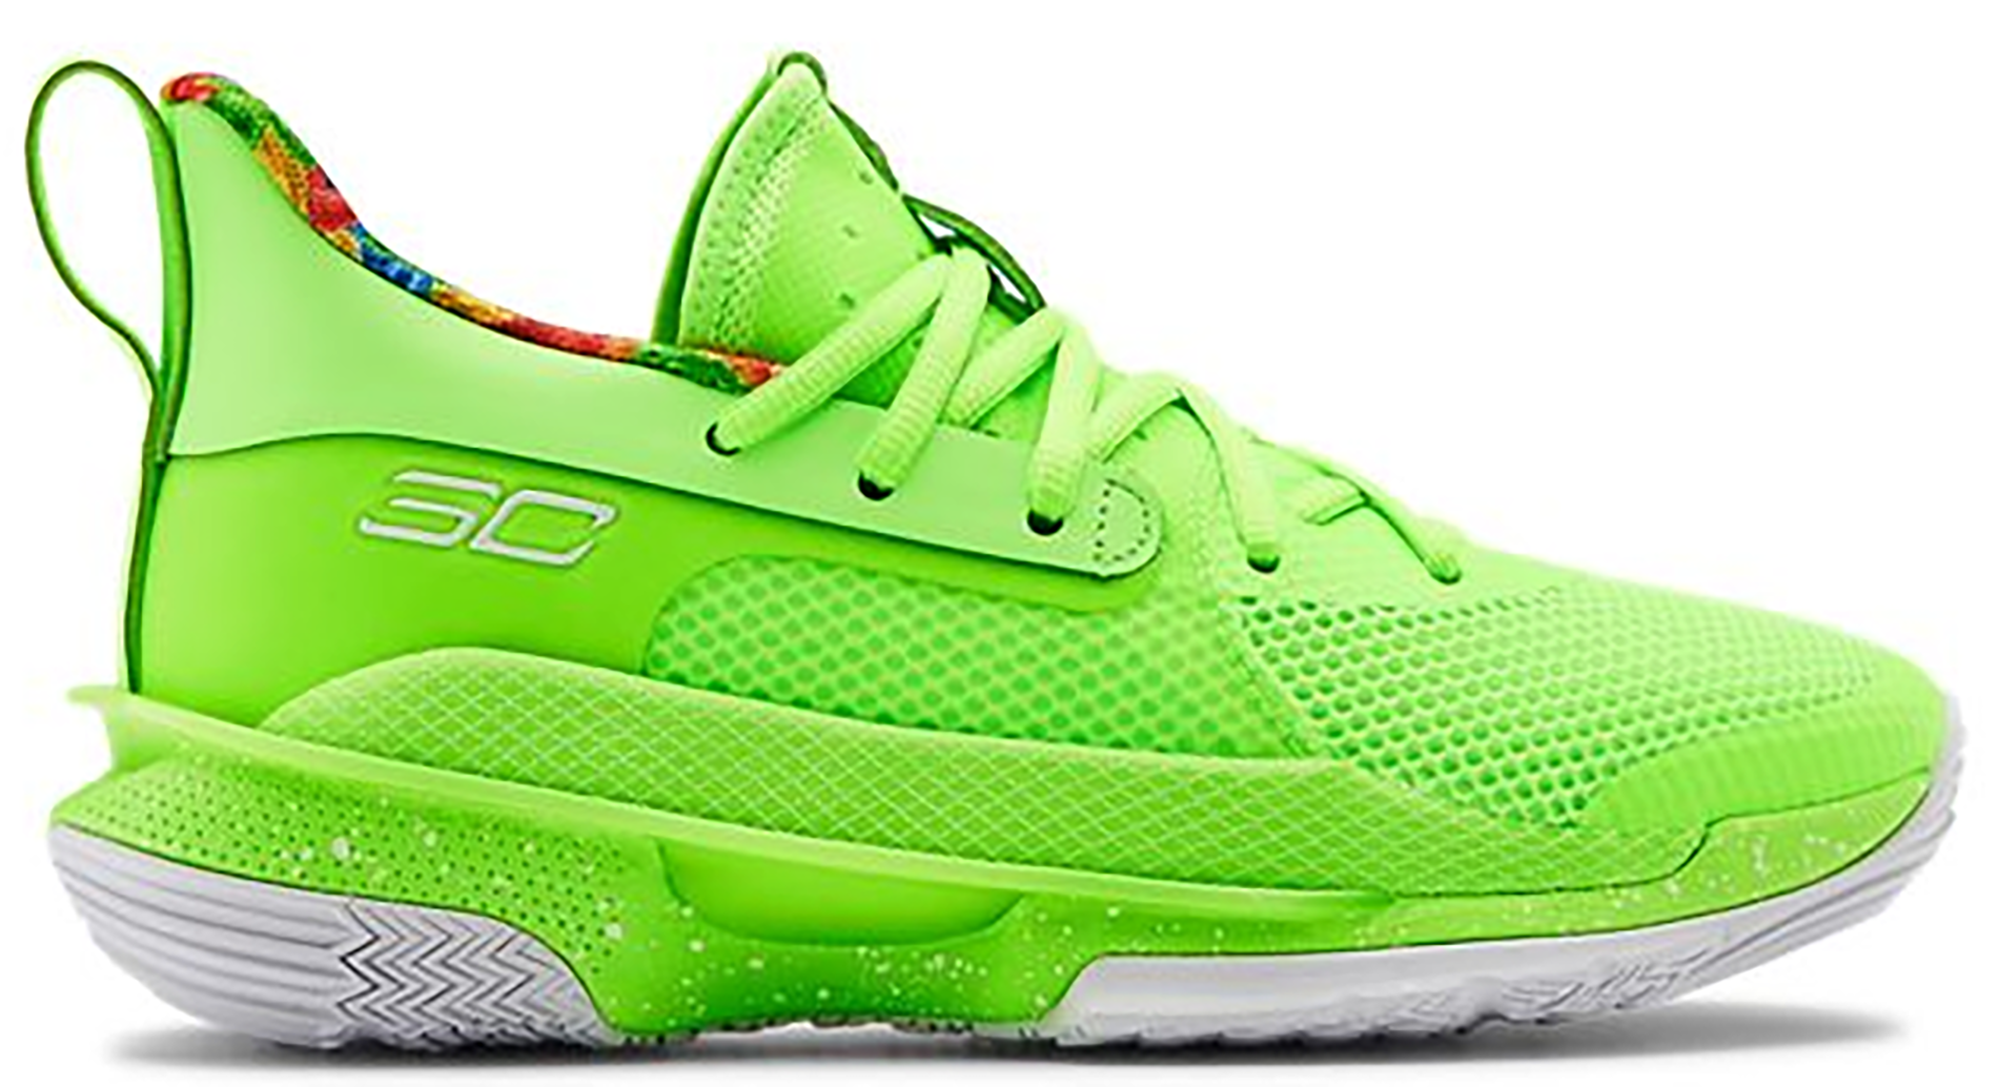 Under Armour Curry 7 Sour Patch Kids